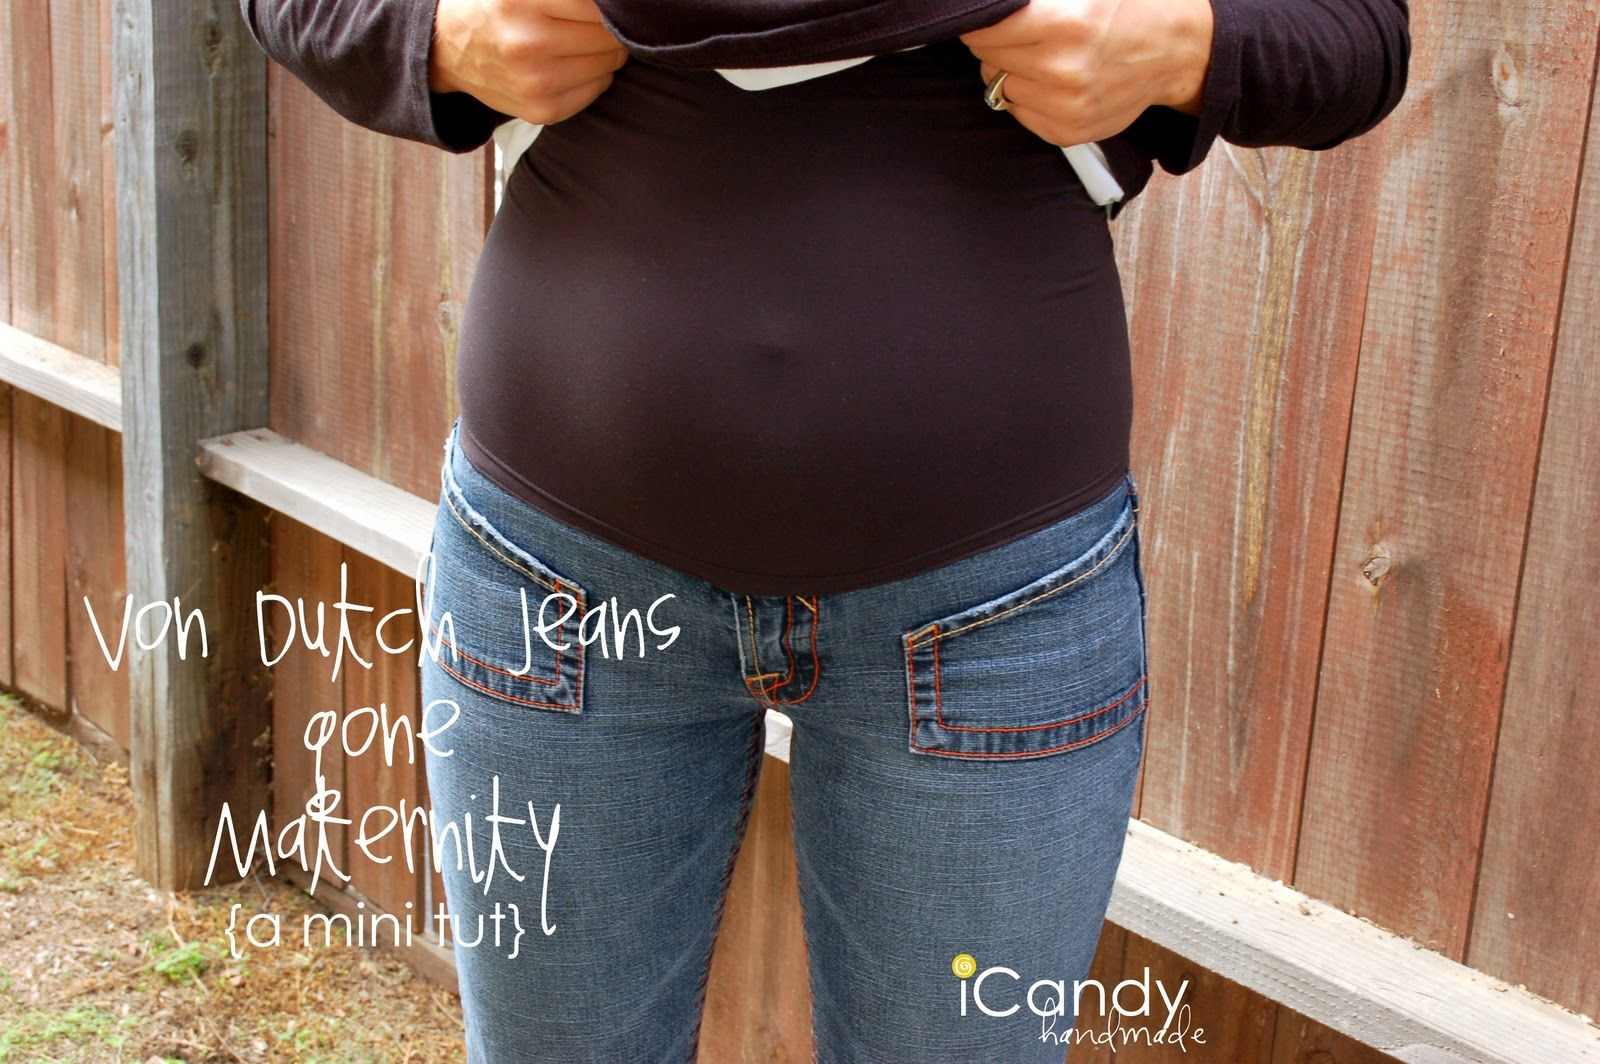 icandy handmade: (tutorial) making maternity jeans from normal jeans